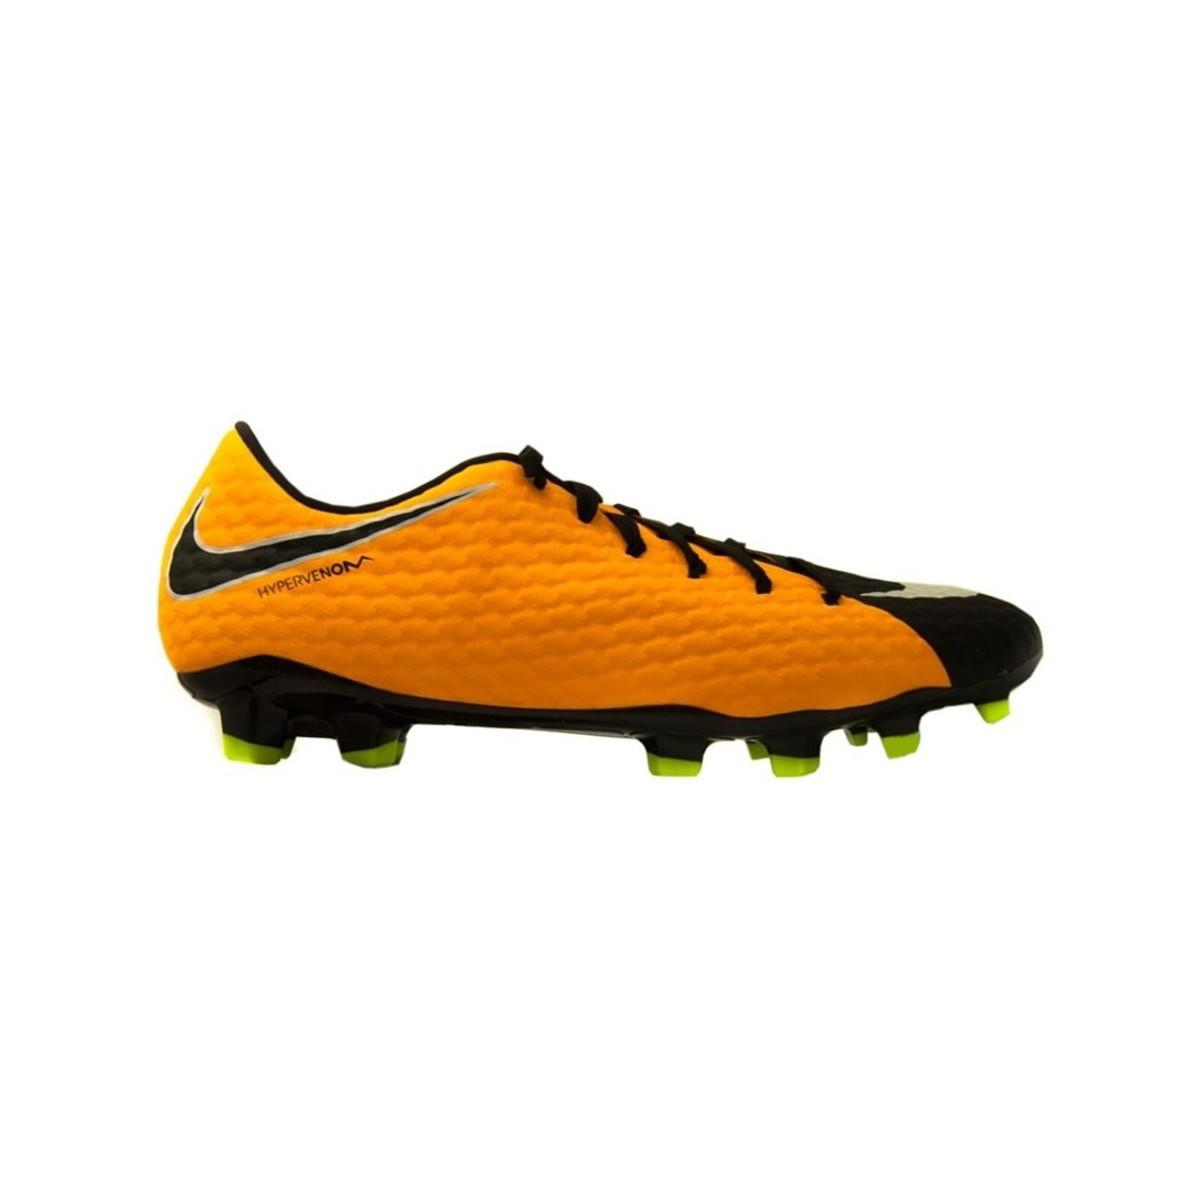 280f63b99 Nike Hypervenom Phelon Iii Fg Men's Football Boots In Yellow in ...